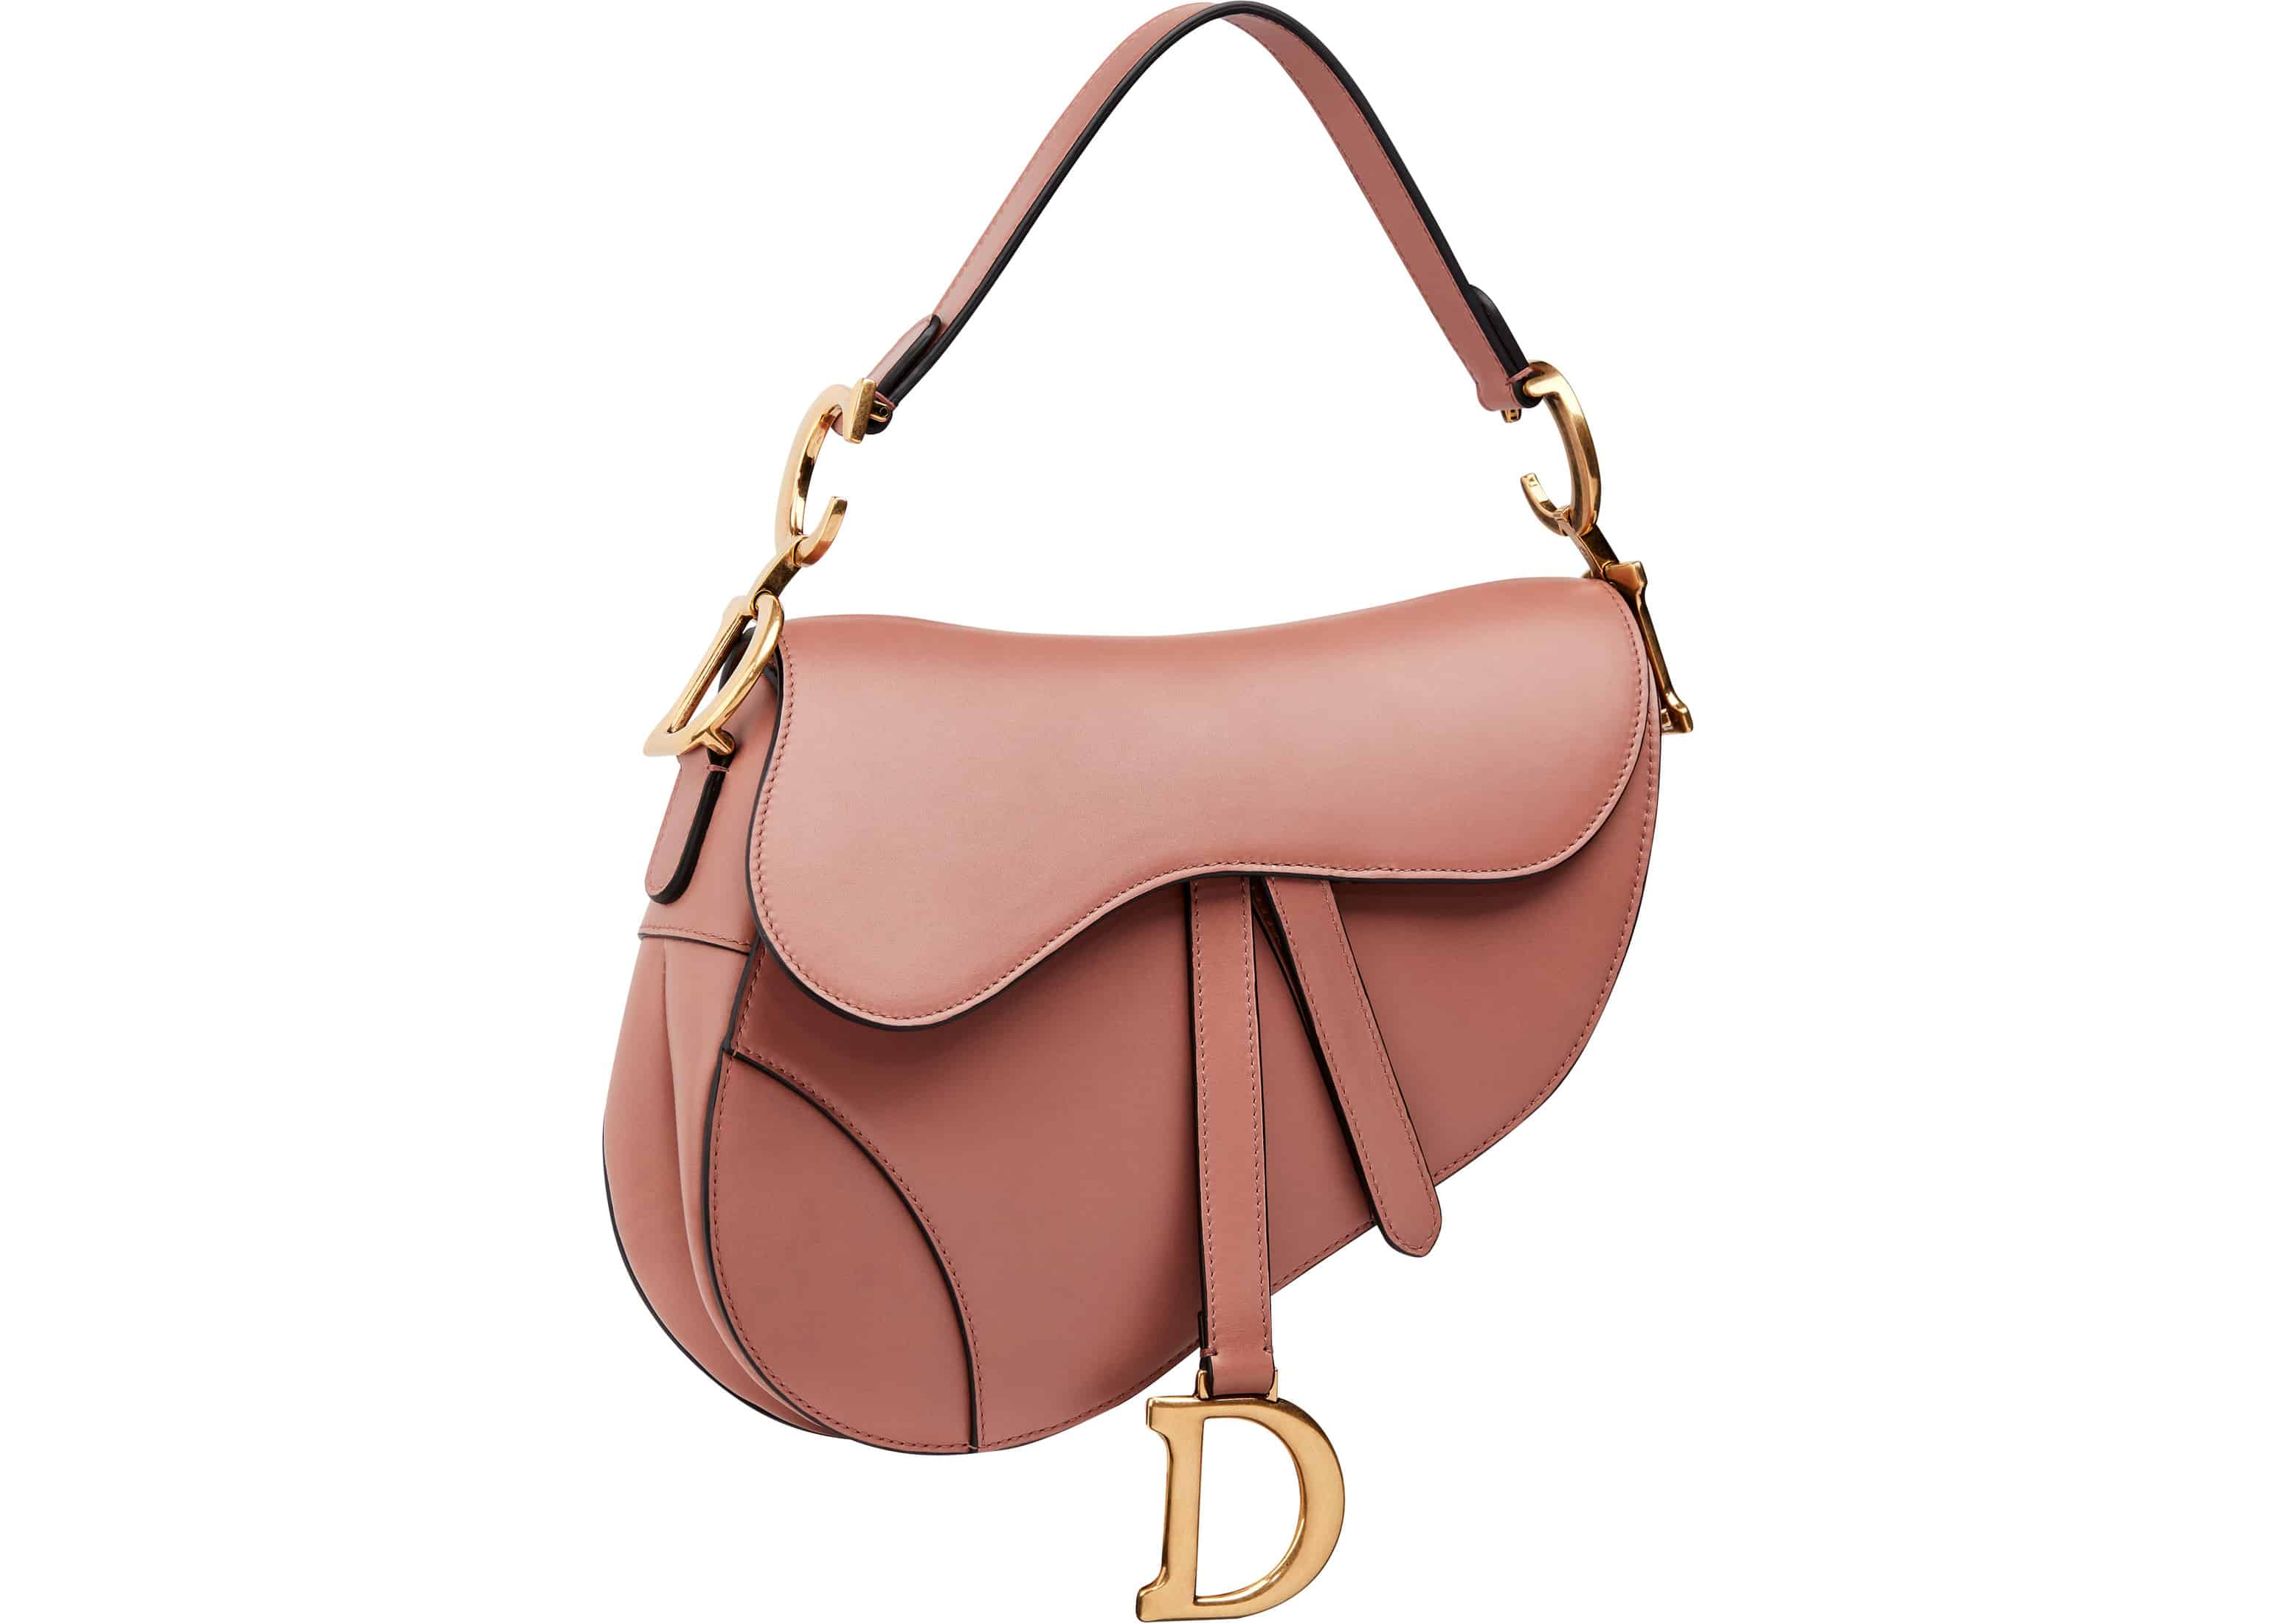 35ea83f2e148 The New Dior Saddle Bag Is Finally in Stores — Dior Officially ...